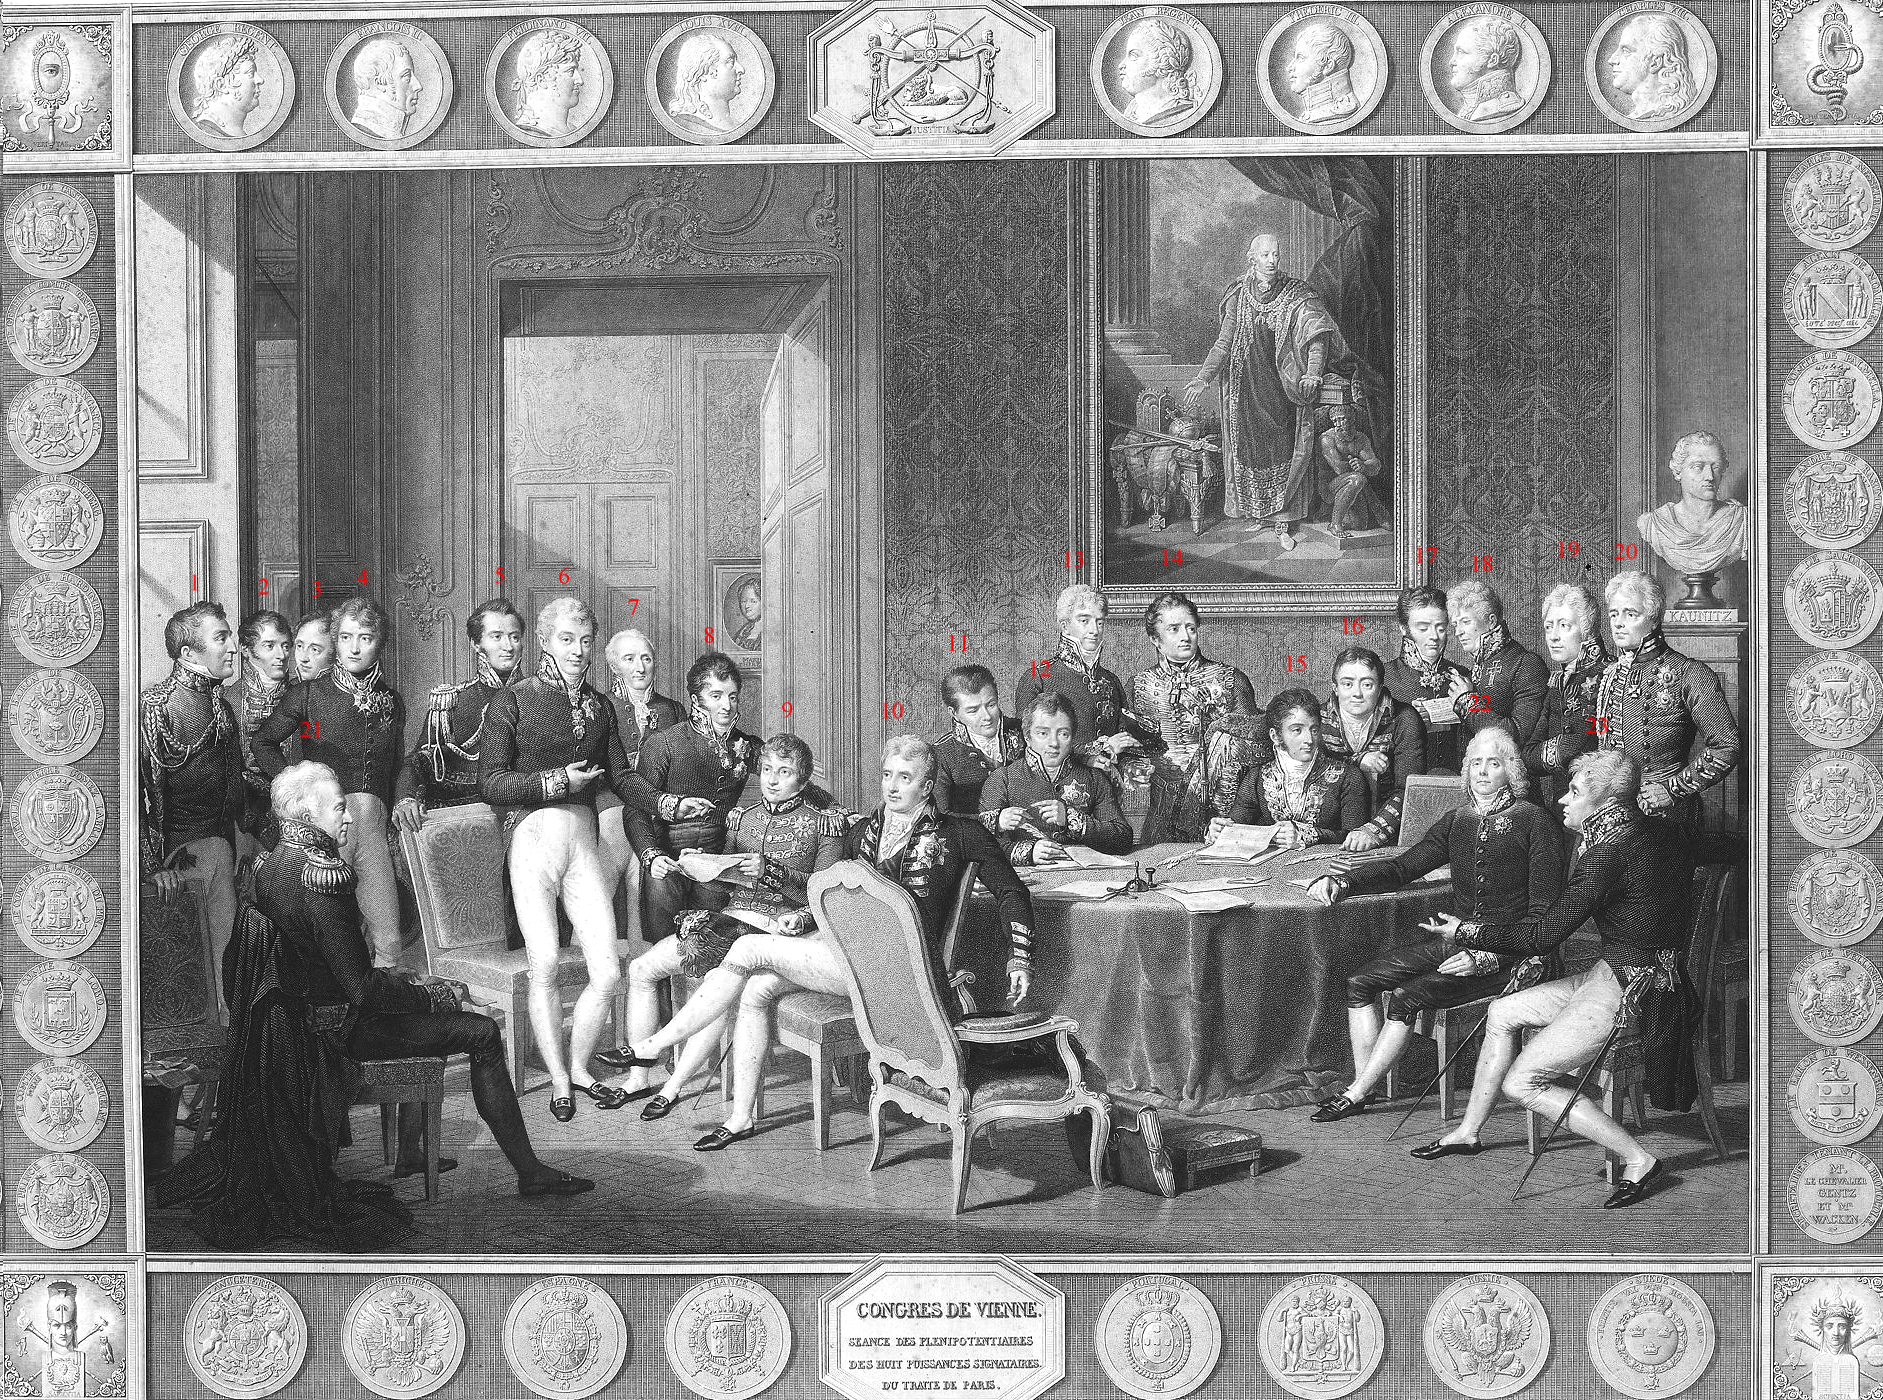 congress of vienna The congress of vienna has 72 ratings and 2 reviews mark said: harold nicolson's history of the attempt by great britain, russia, prussia and austria to.